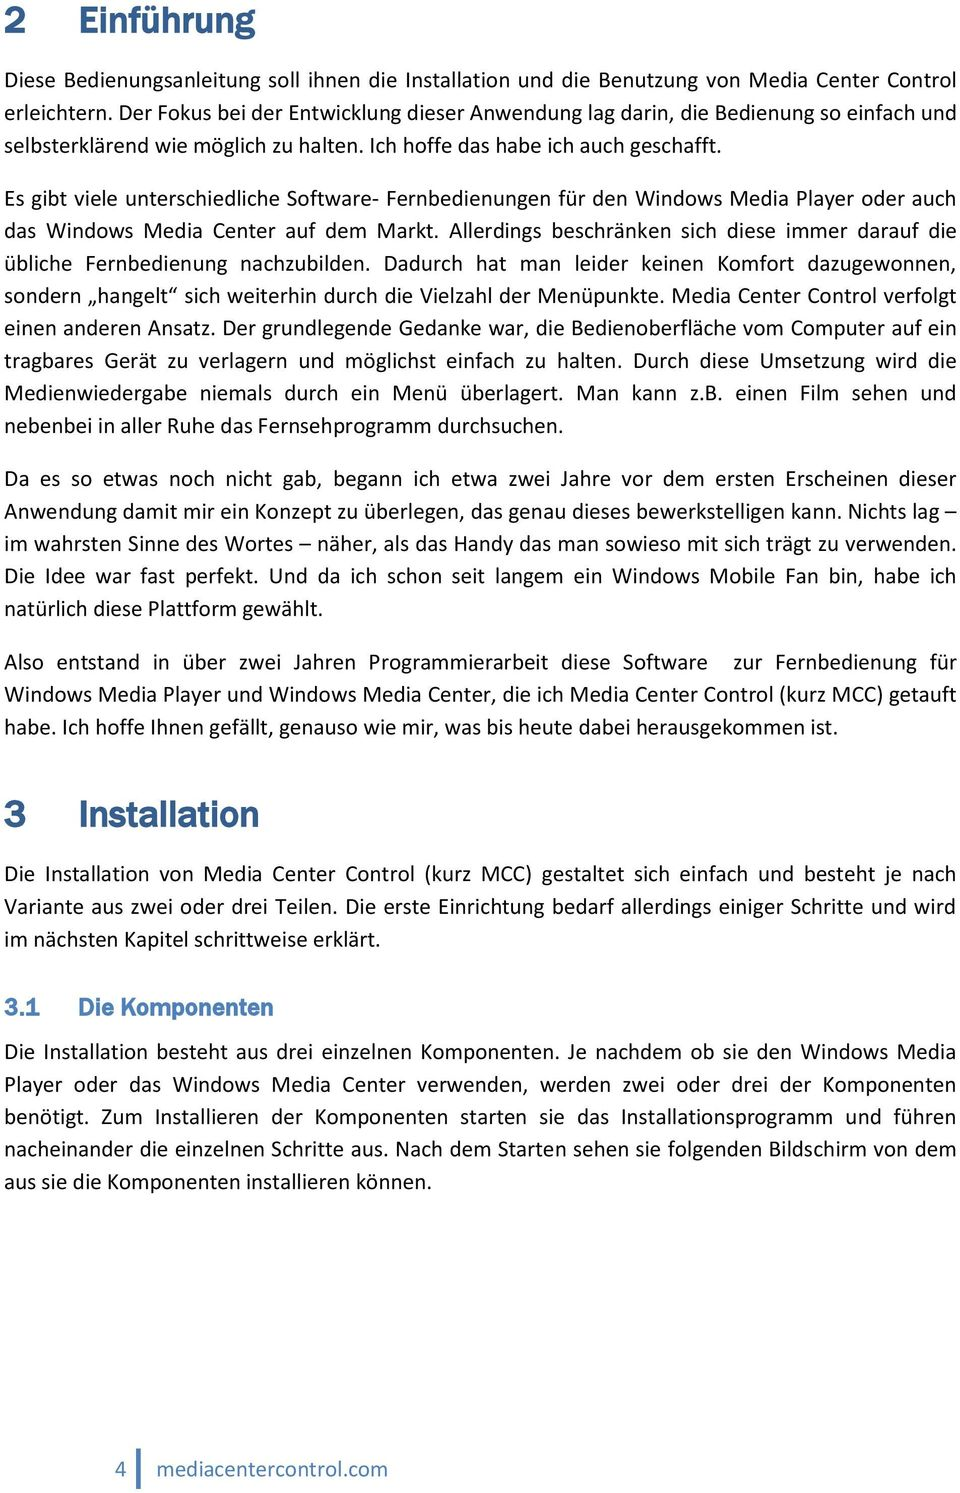 Es gibt viele unterschiedliche Software- Fernbedienungen für den Windows Media Player oder auch das Windows Media Center auf dem Markt.